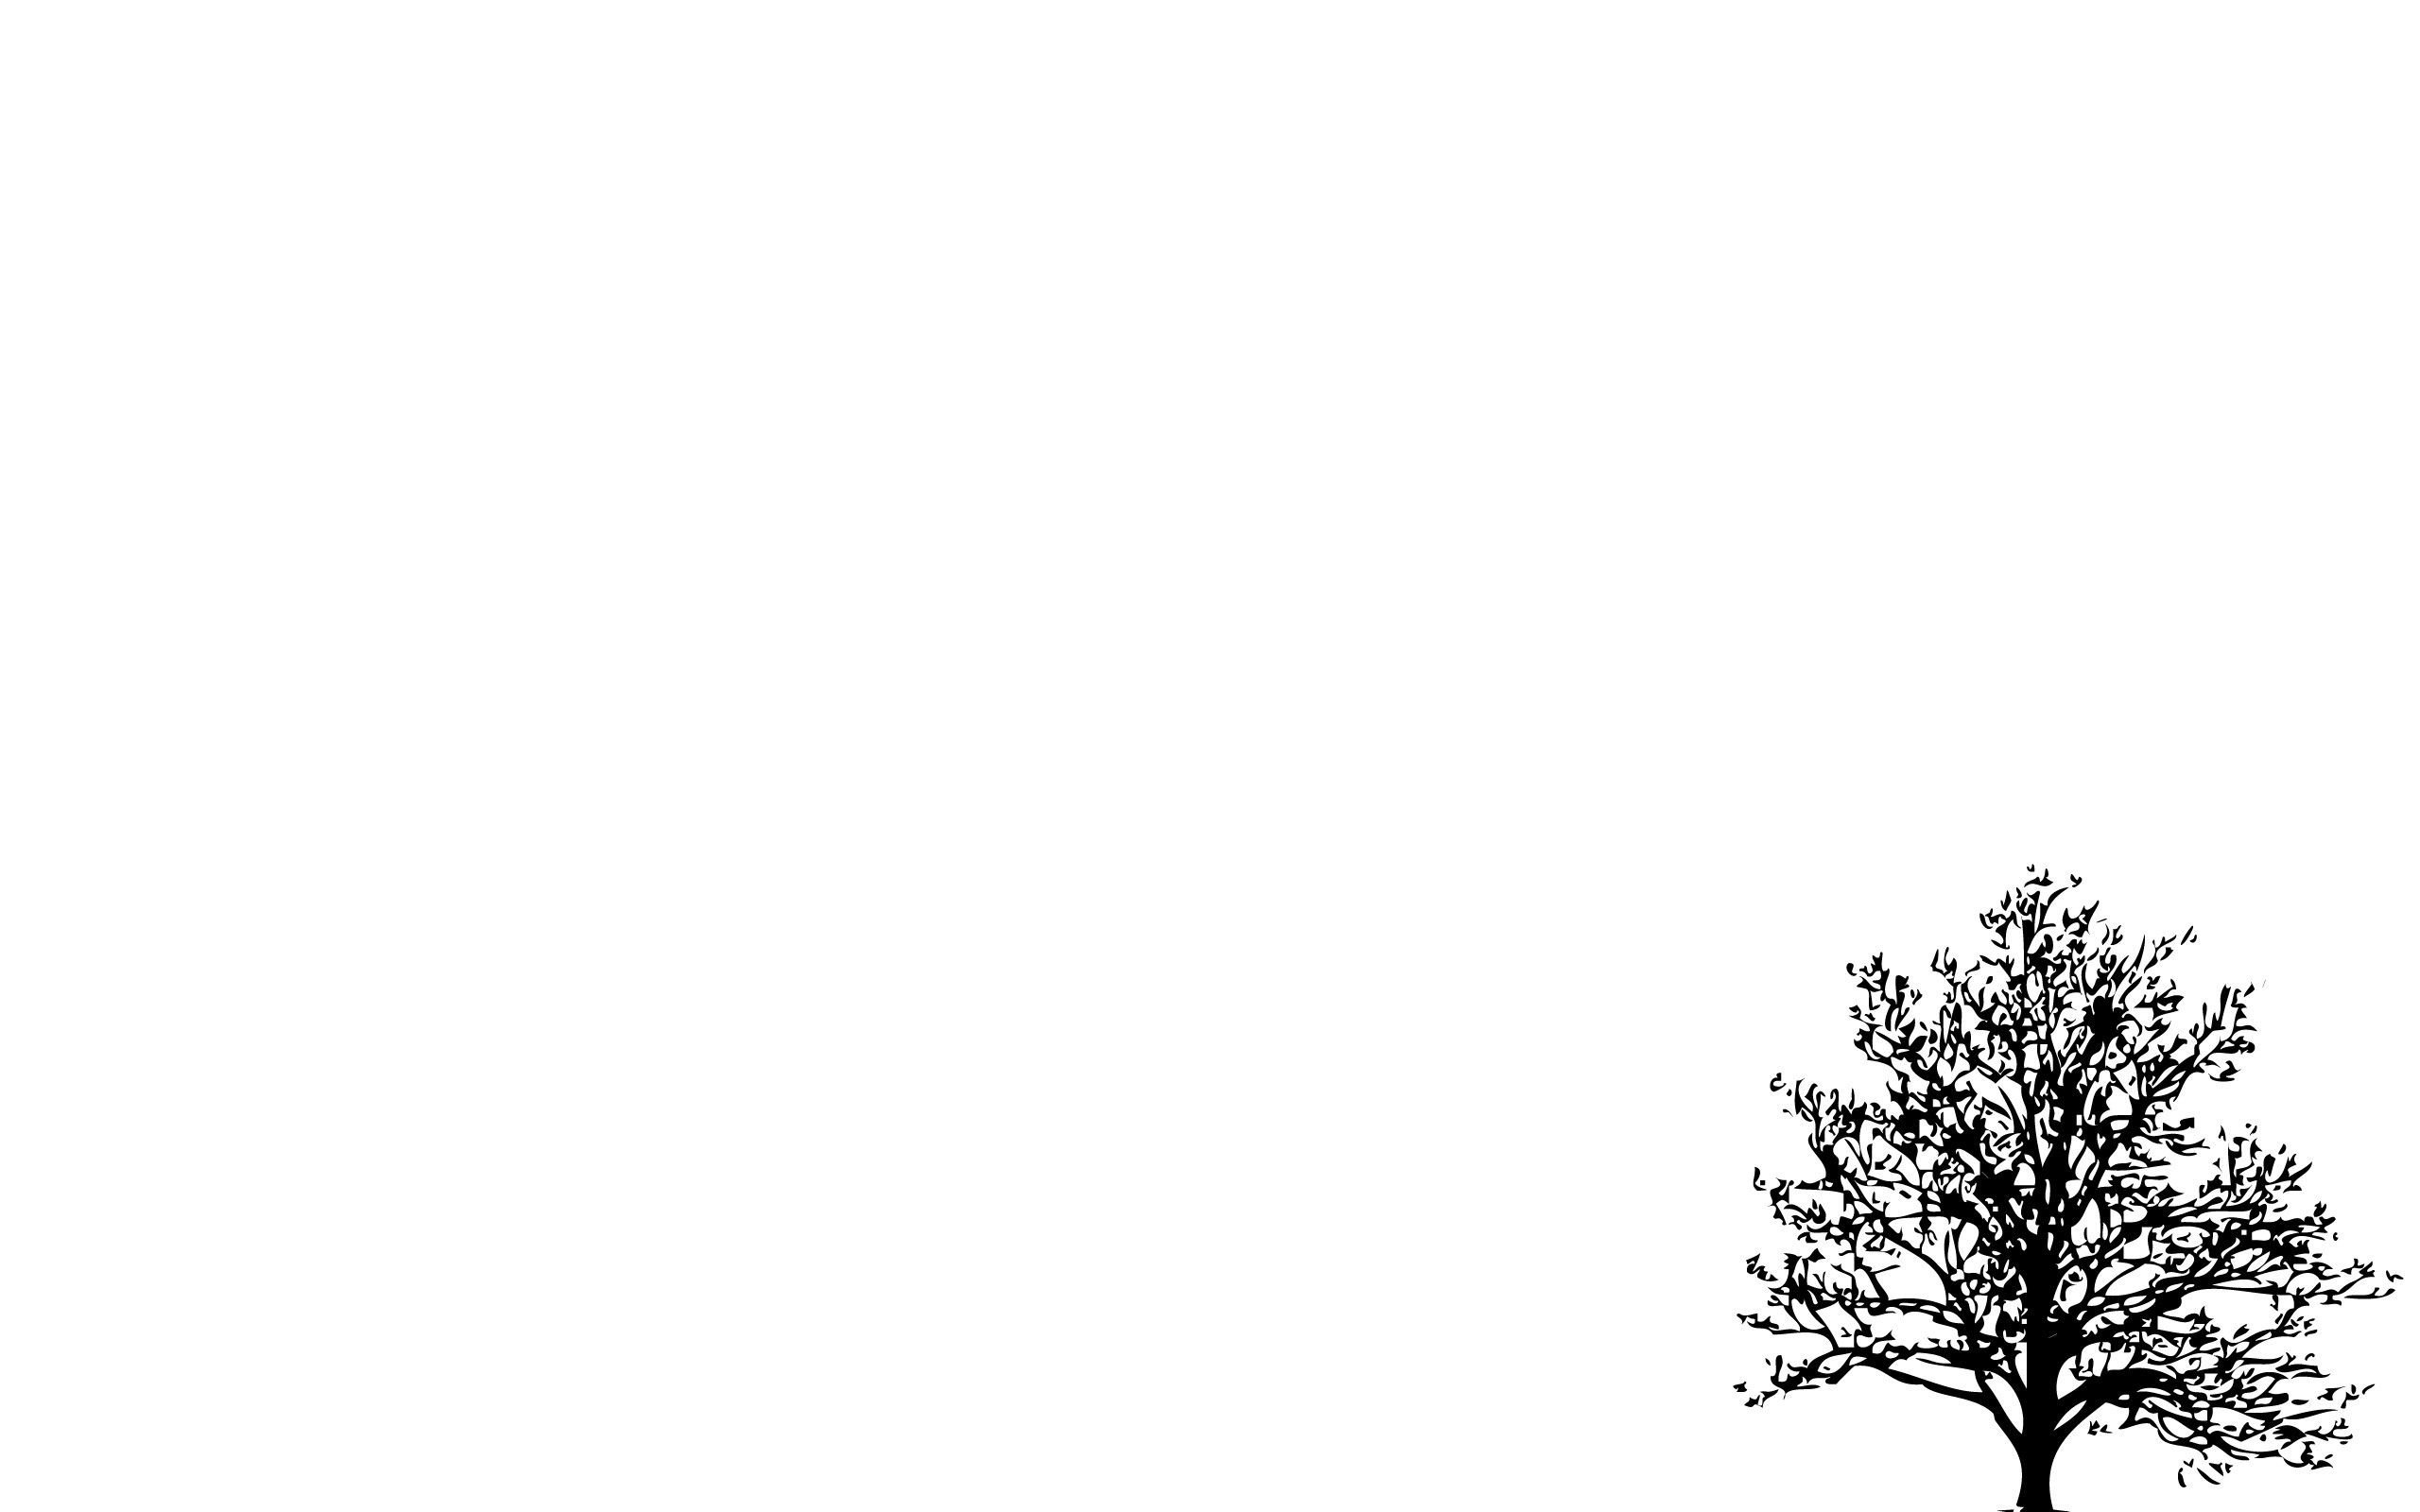 Minimalistic Simple Background Trees White 2560x1600 White Background Wallpaper Minimalist Wallpaper Minimalist Desktop Wallpaper